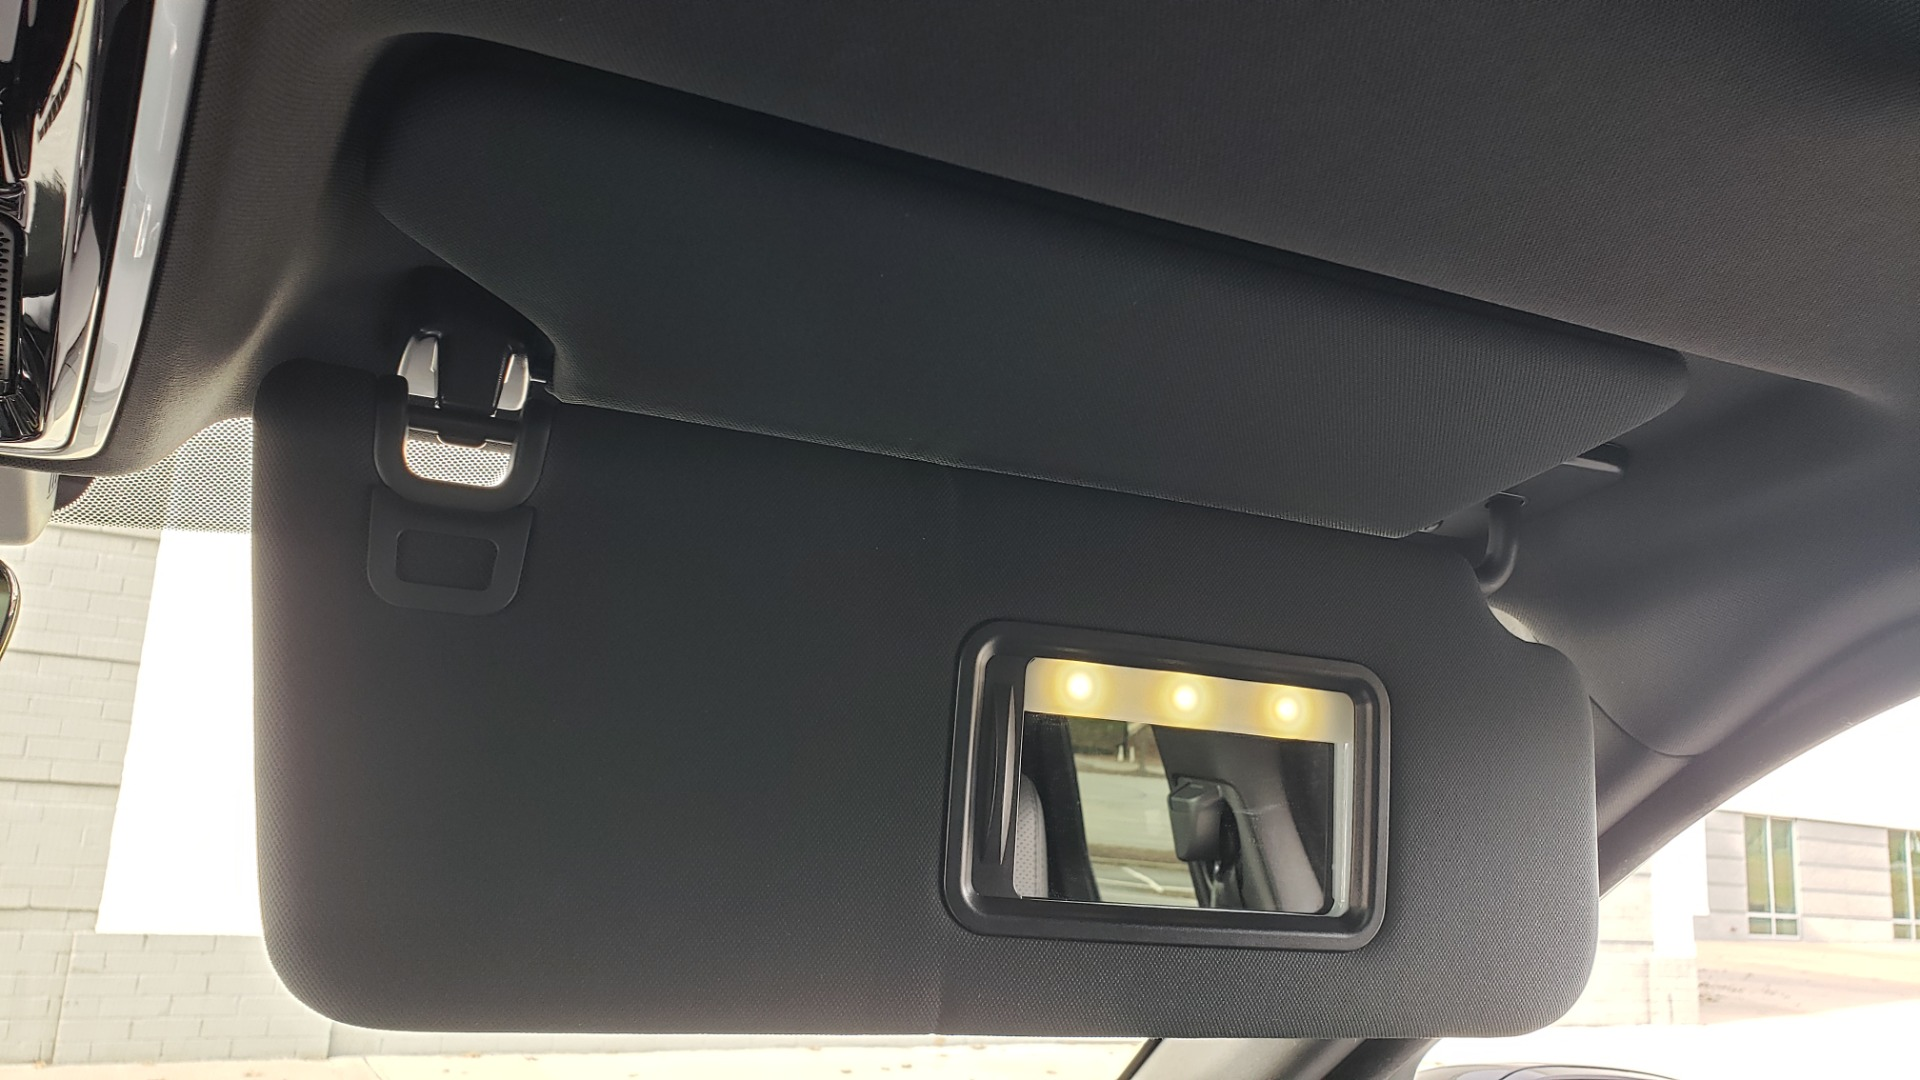 Used 2017 Land Rover RANGE ROVER SPORT HSE DYNAMIC / SC V6 / NAV / MERIDIAN / PANO-ROOF / REARVIEW for sale Sold at Formula Imports in Charlotte NC 28227 58